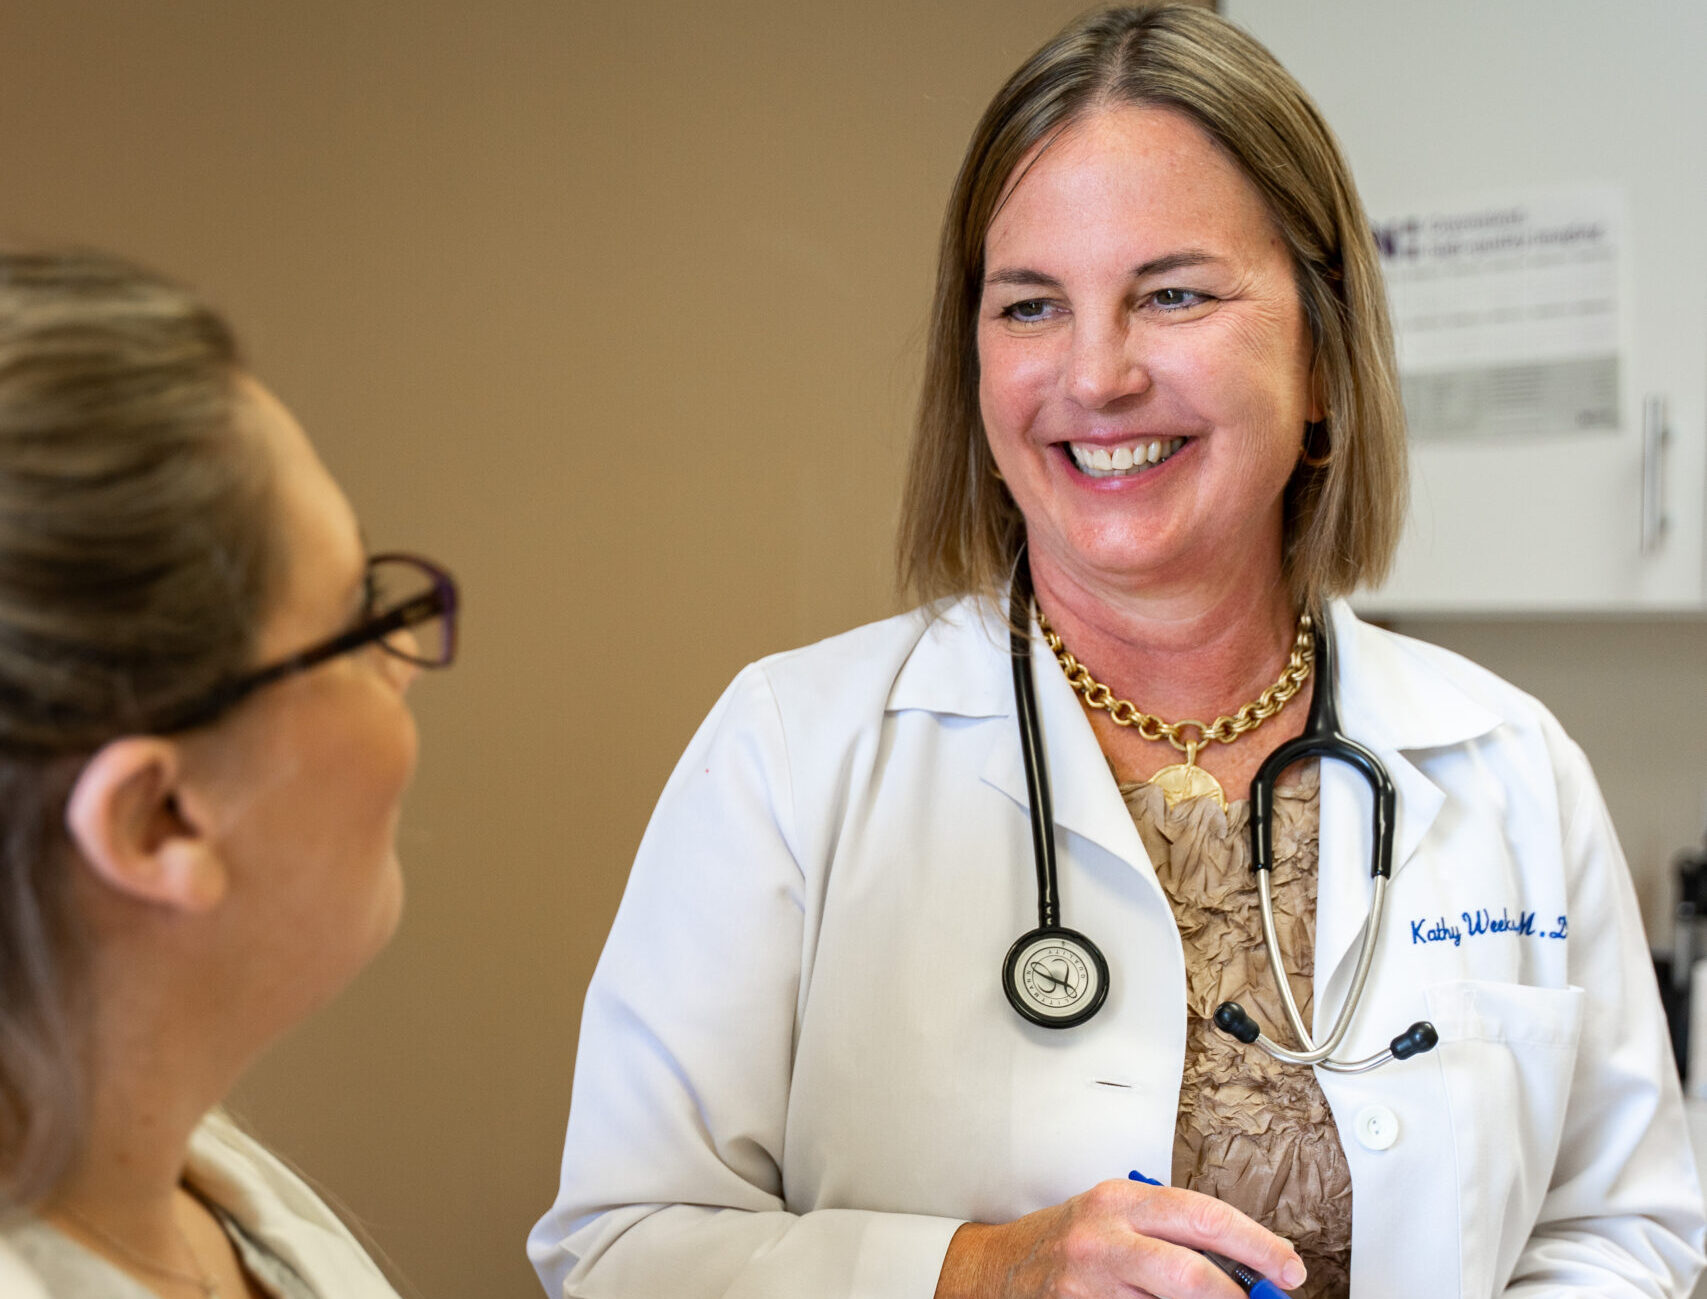 Dr. Katherine P. Weeks, MD - Primary care physician in Mooresville, NC